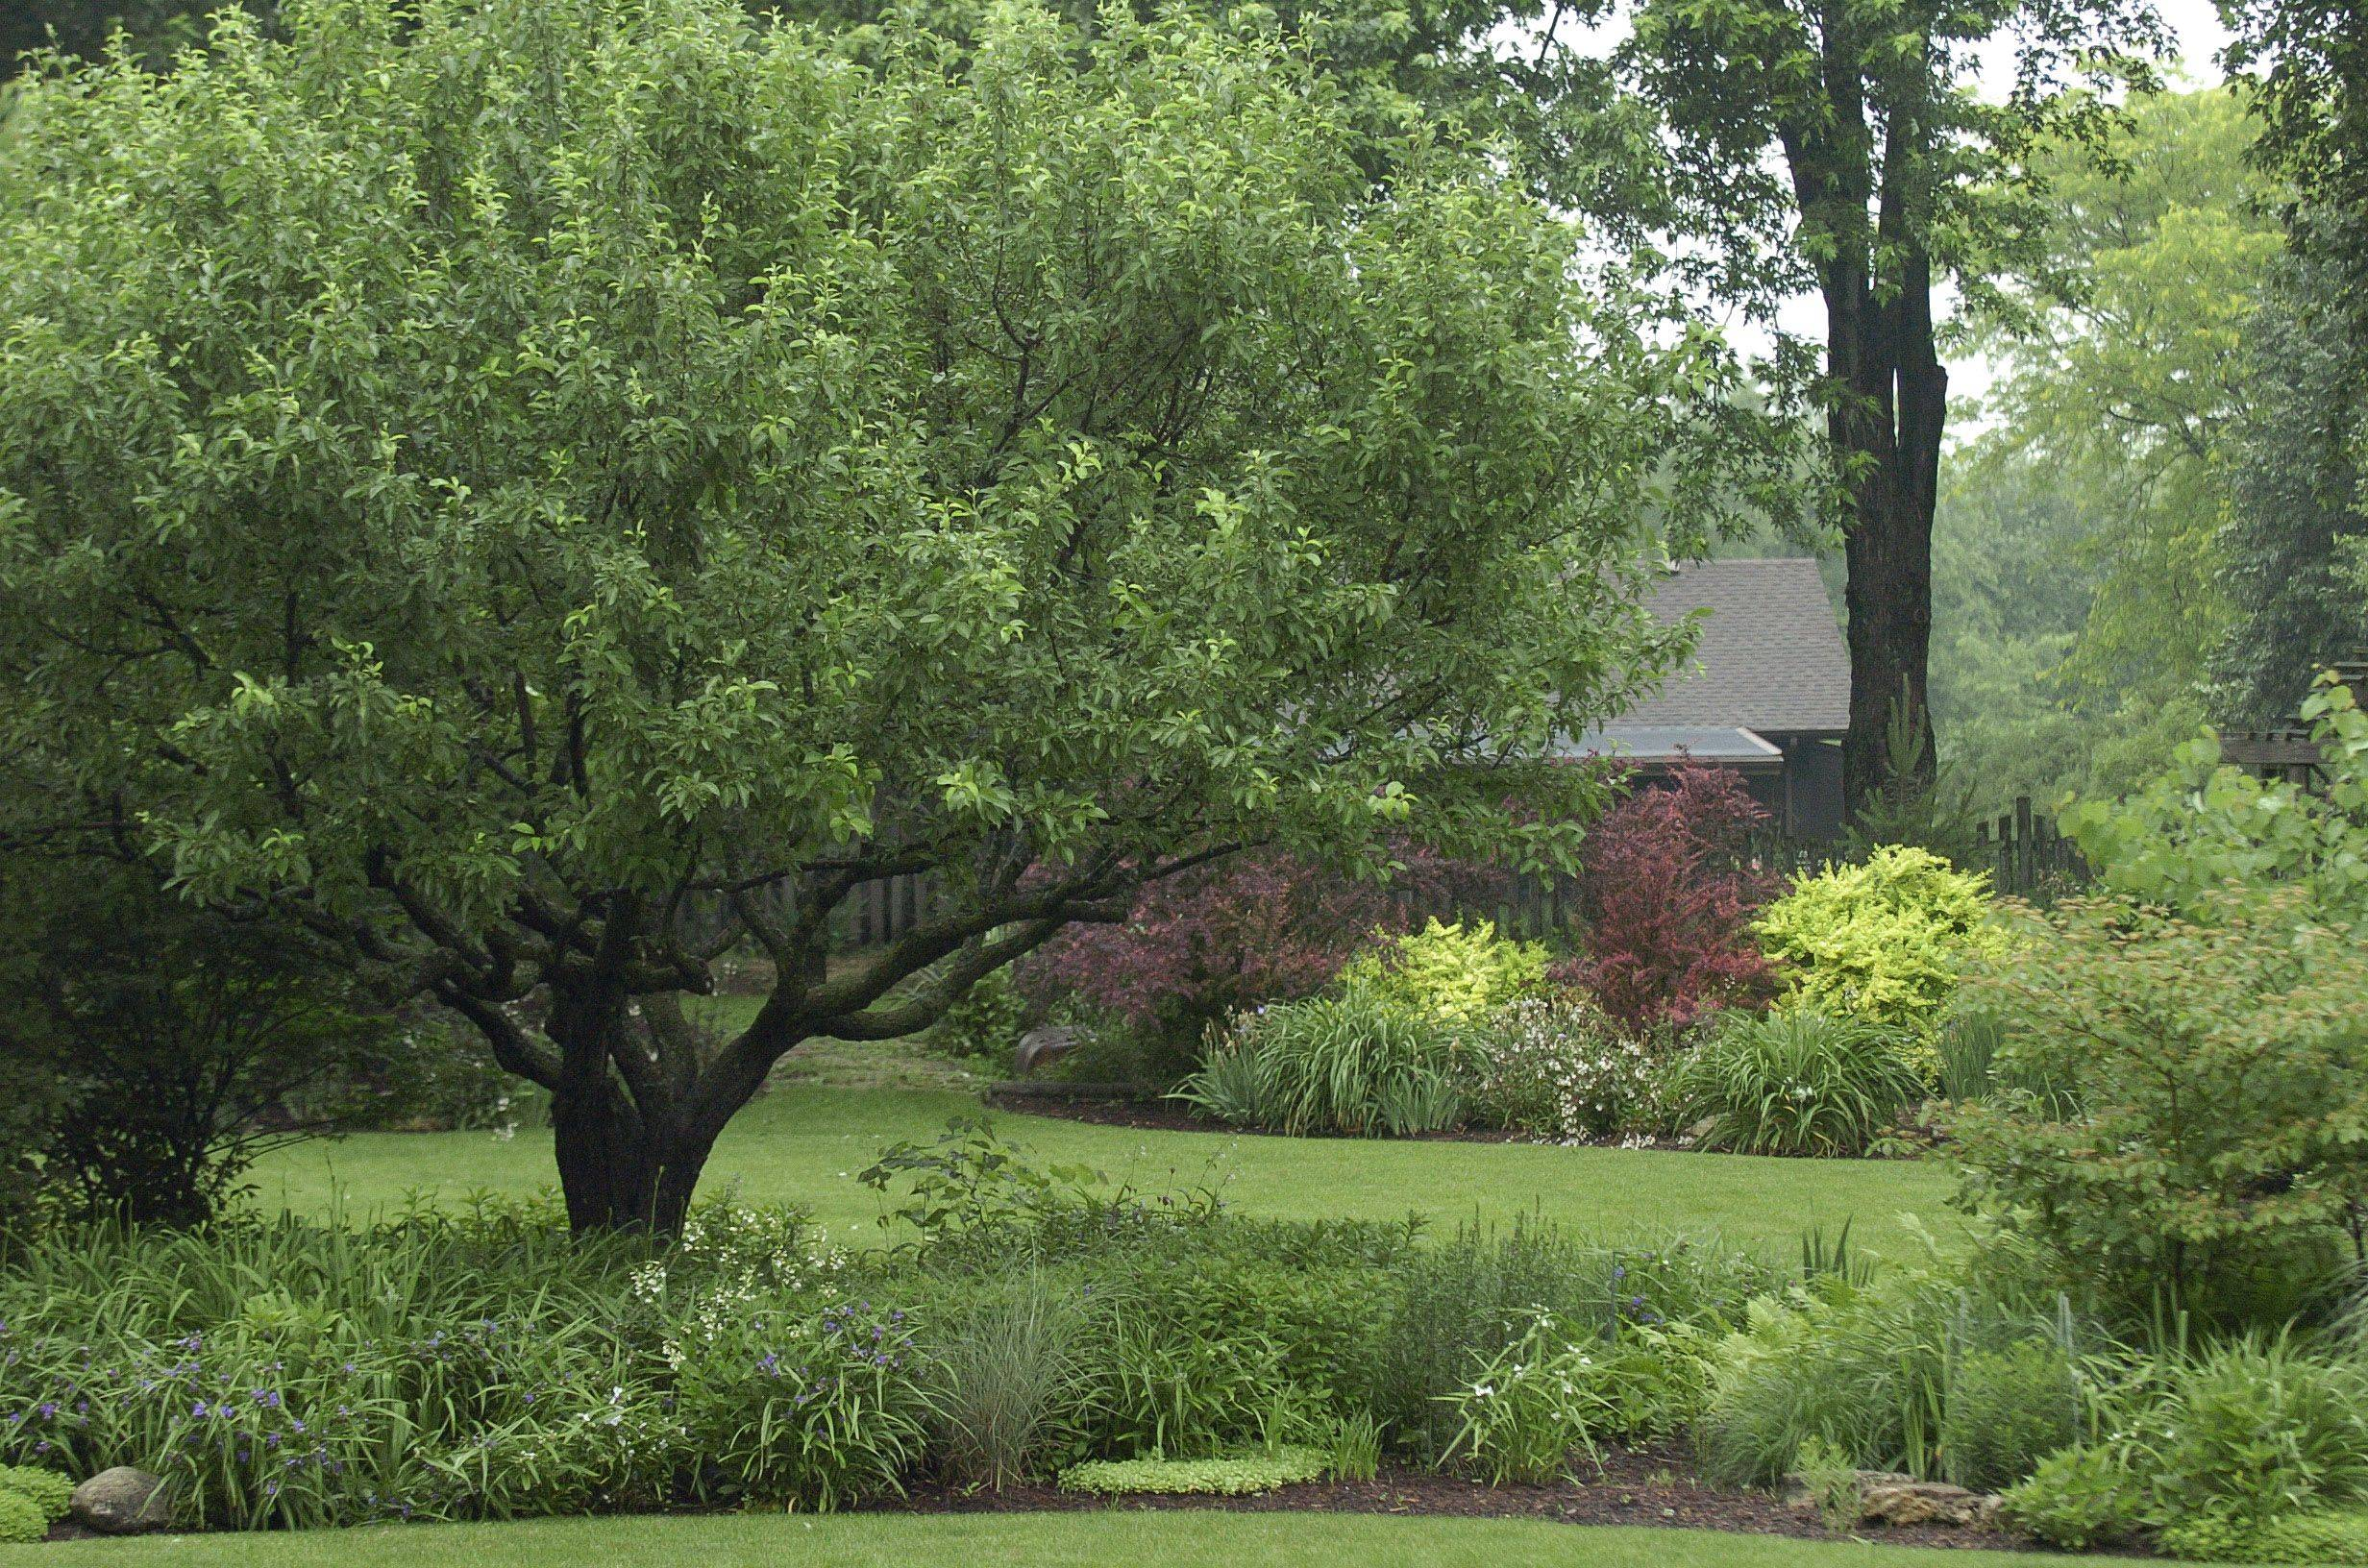 The garden of Lori and Byron Ambrose will be open for the Batavia Plain Dirt Gardeners Saturday, June 25.